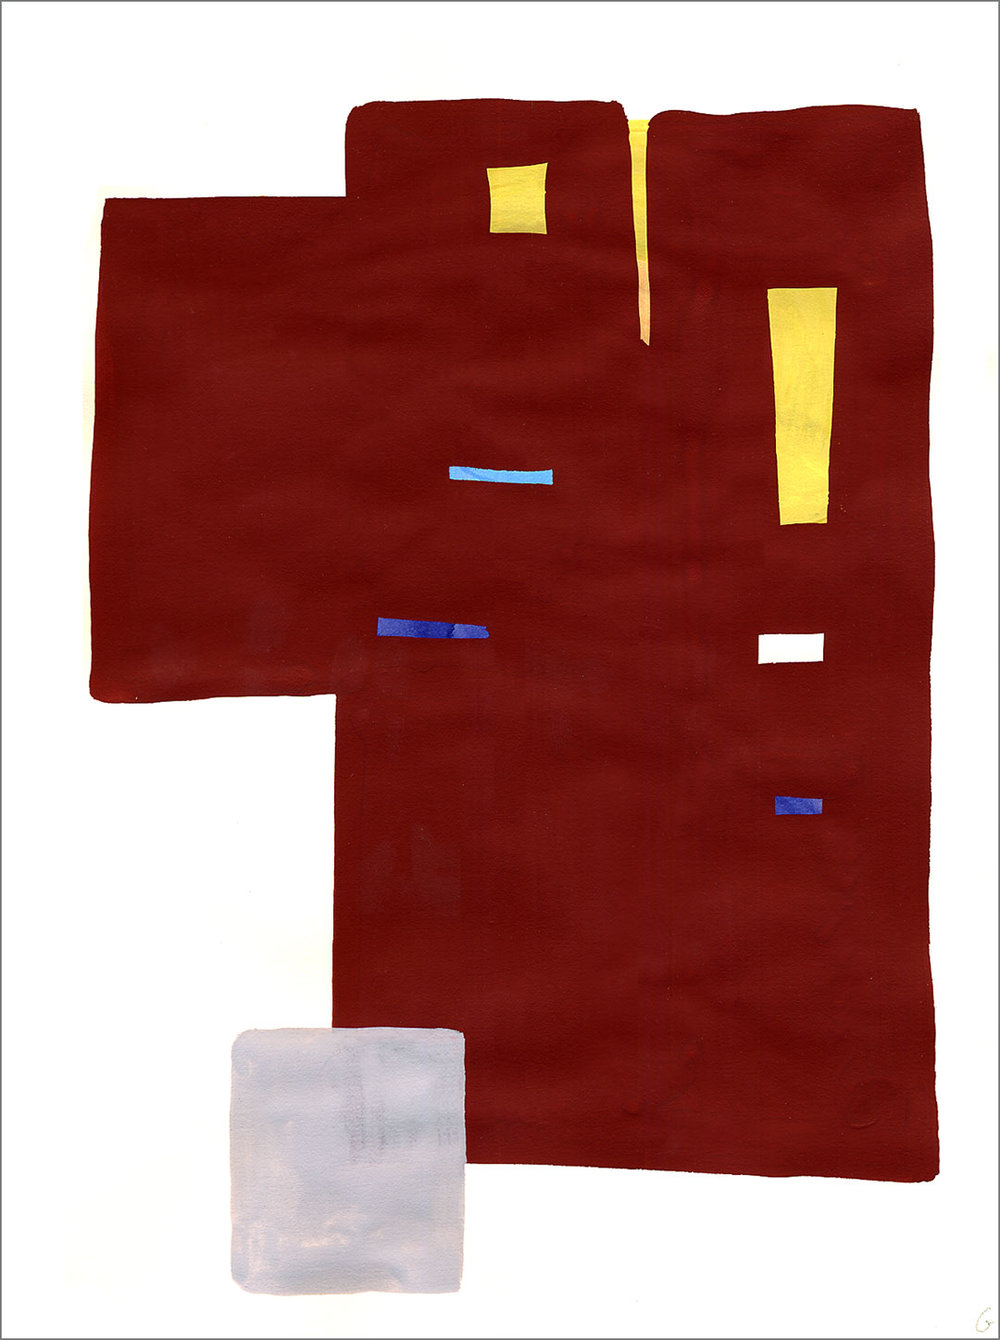 "Fort 4, 2005, W9"" x H12"", gouache on paper."